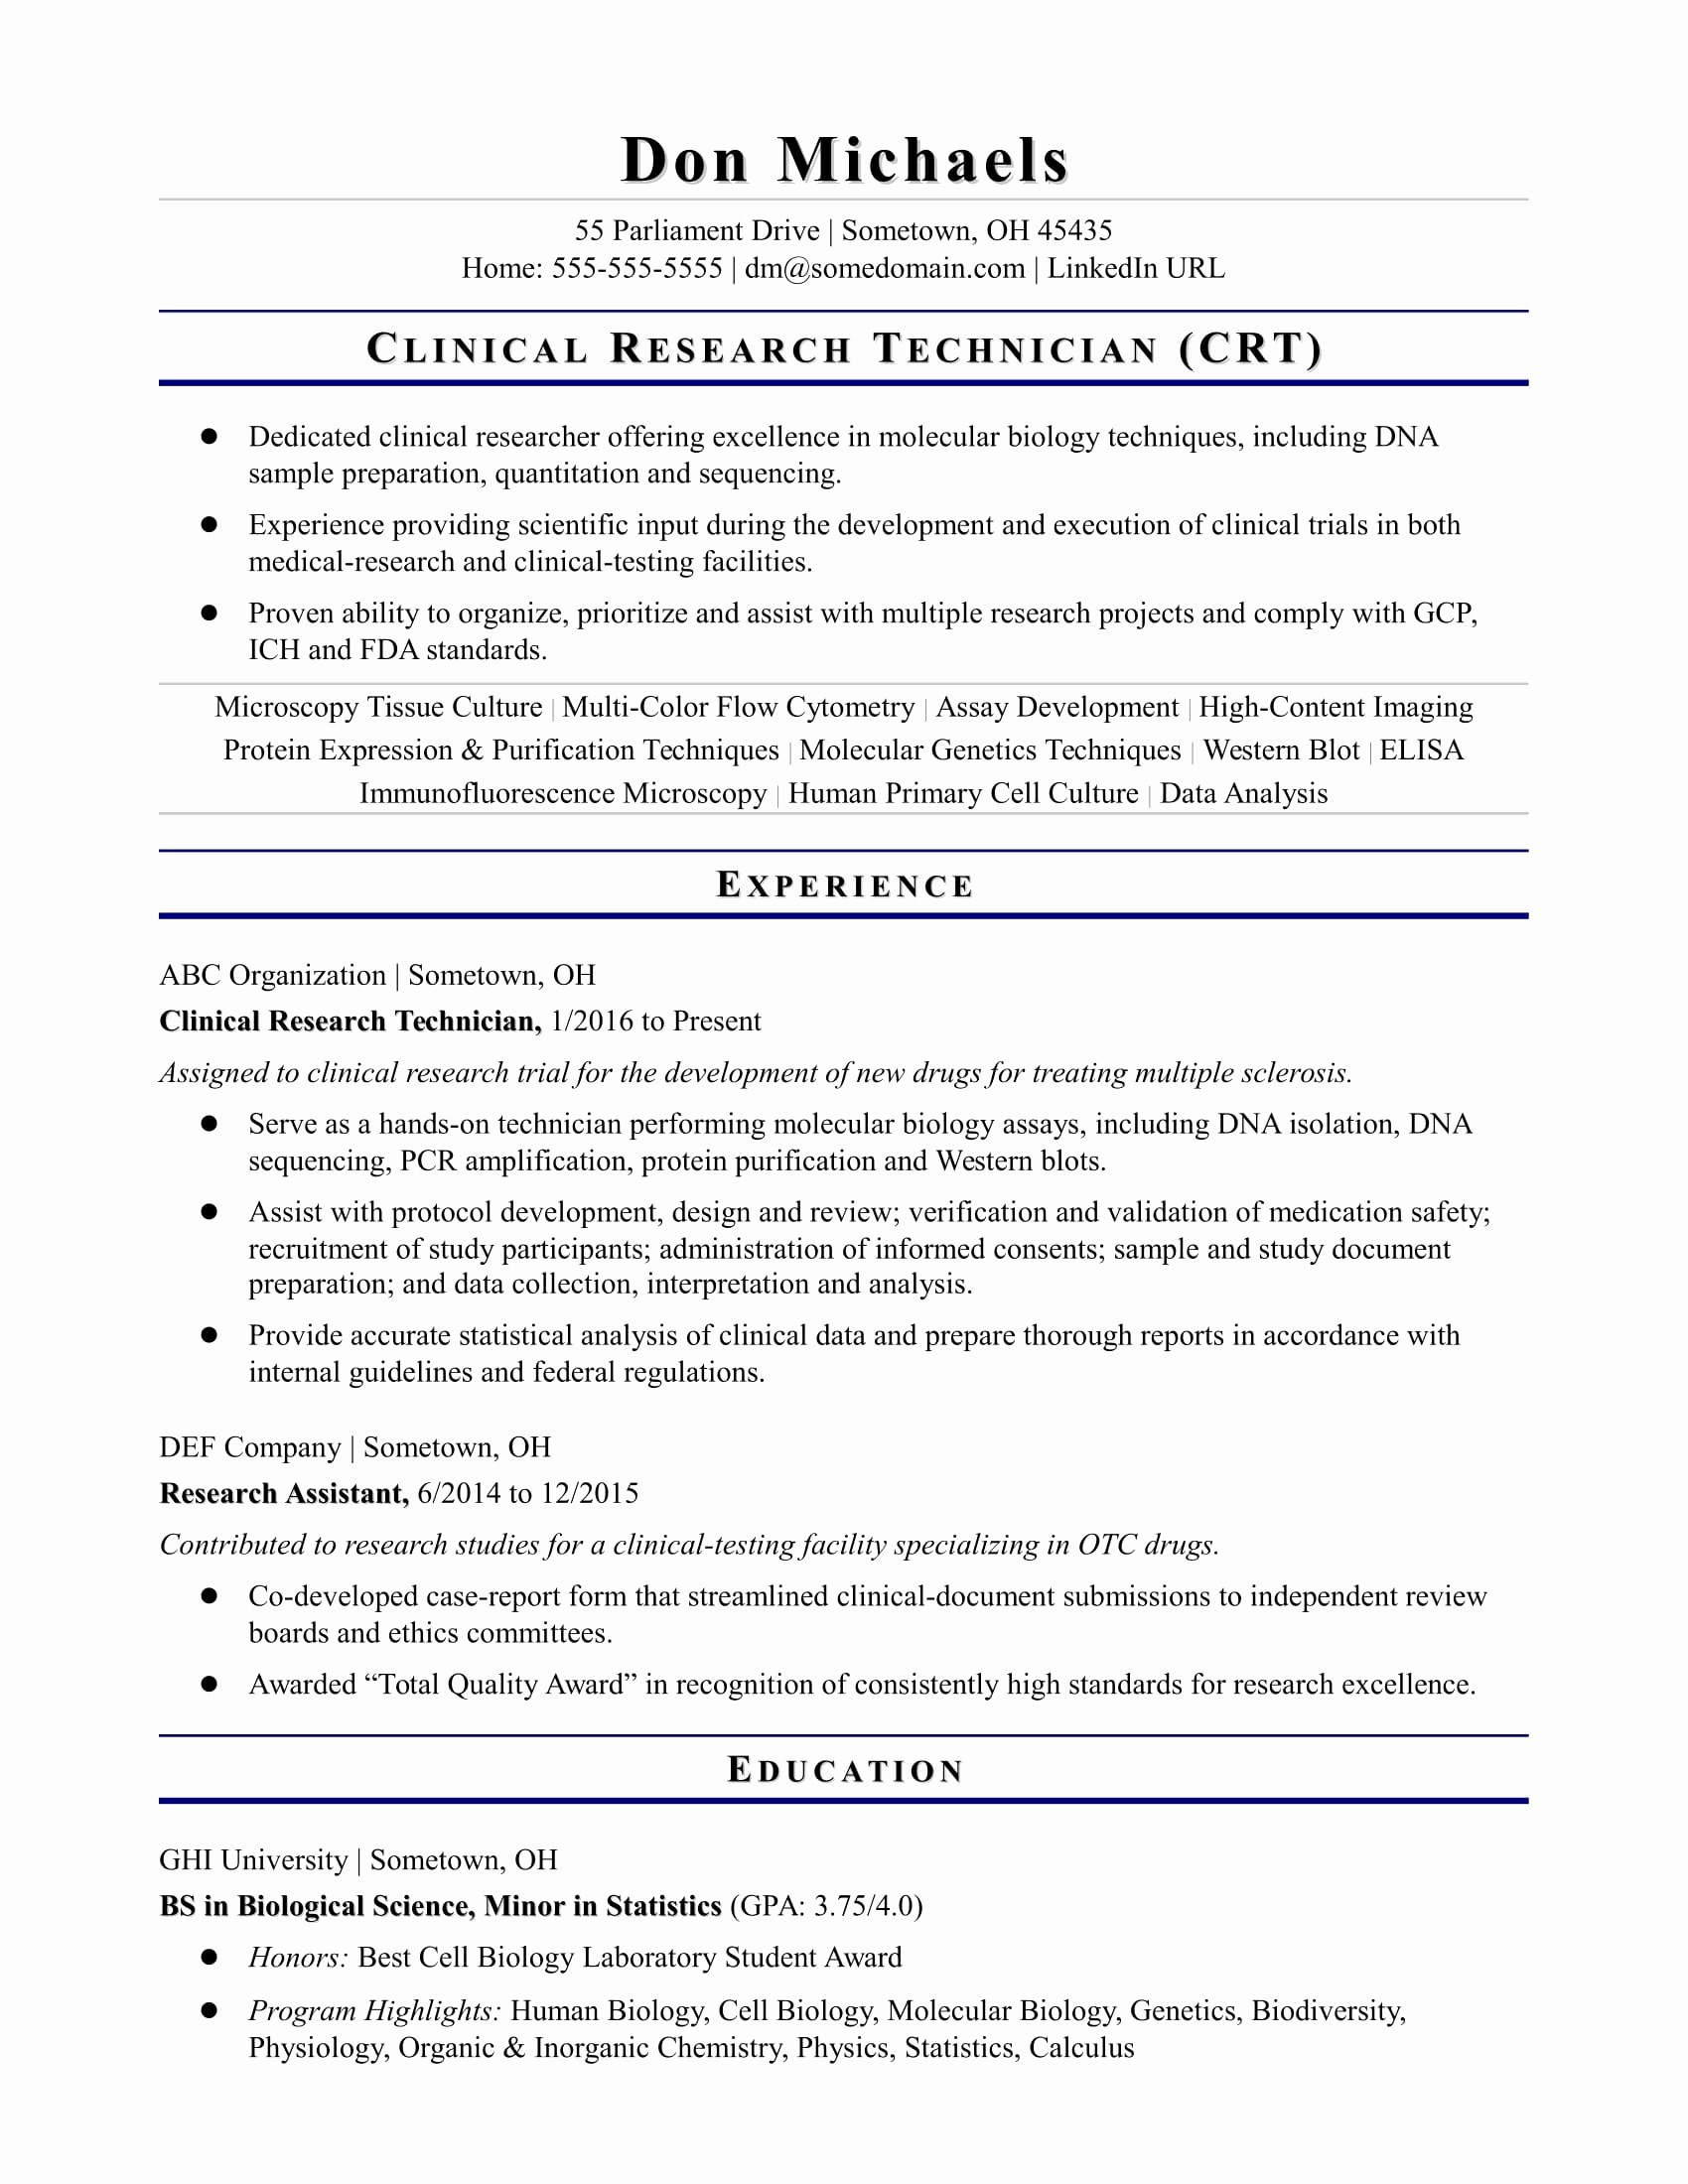 Data Modeler Resume - Data Scientist Resume Beautiful Best Perfect Nursing Resume Awesome